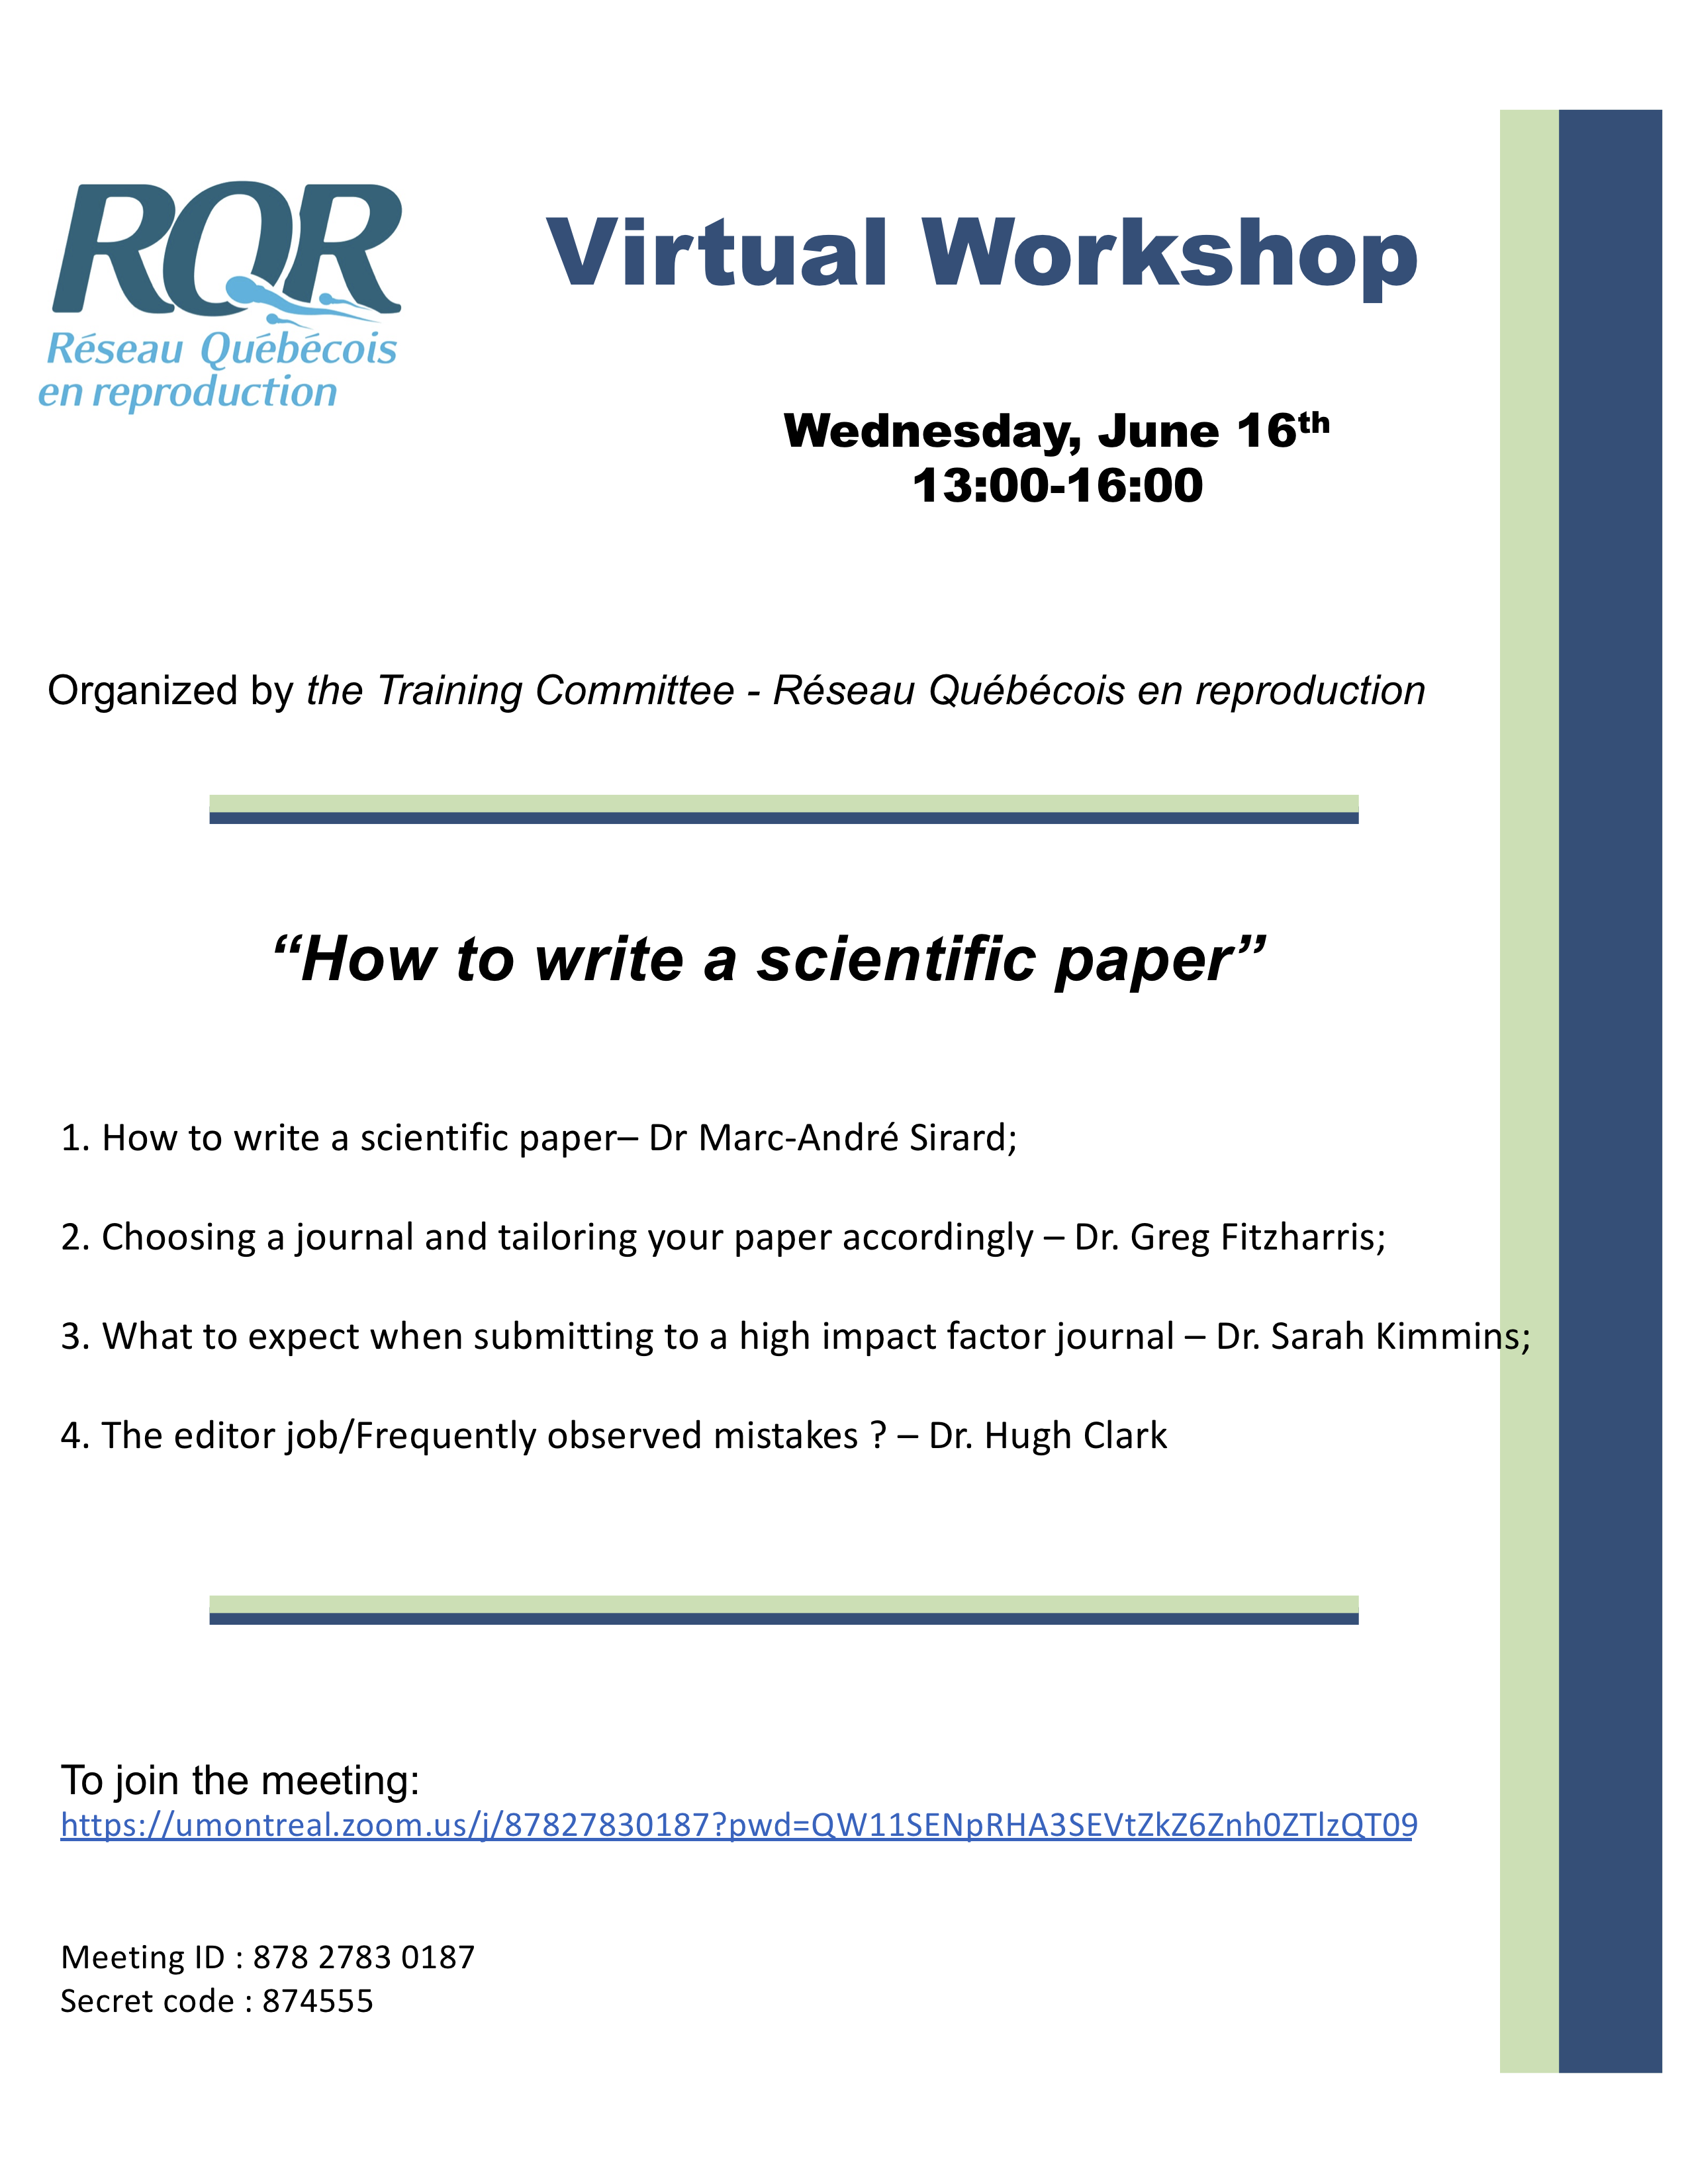 how-to-write-a-scientific-paper-2021